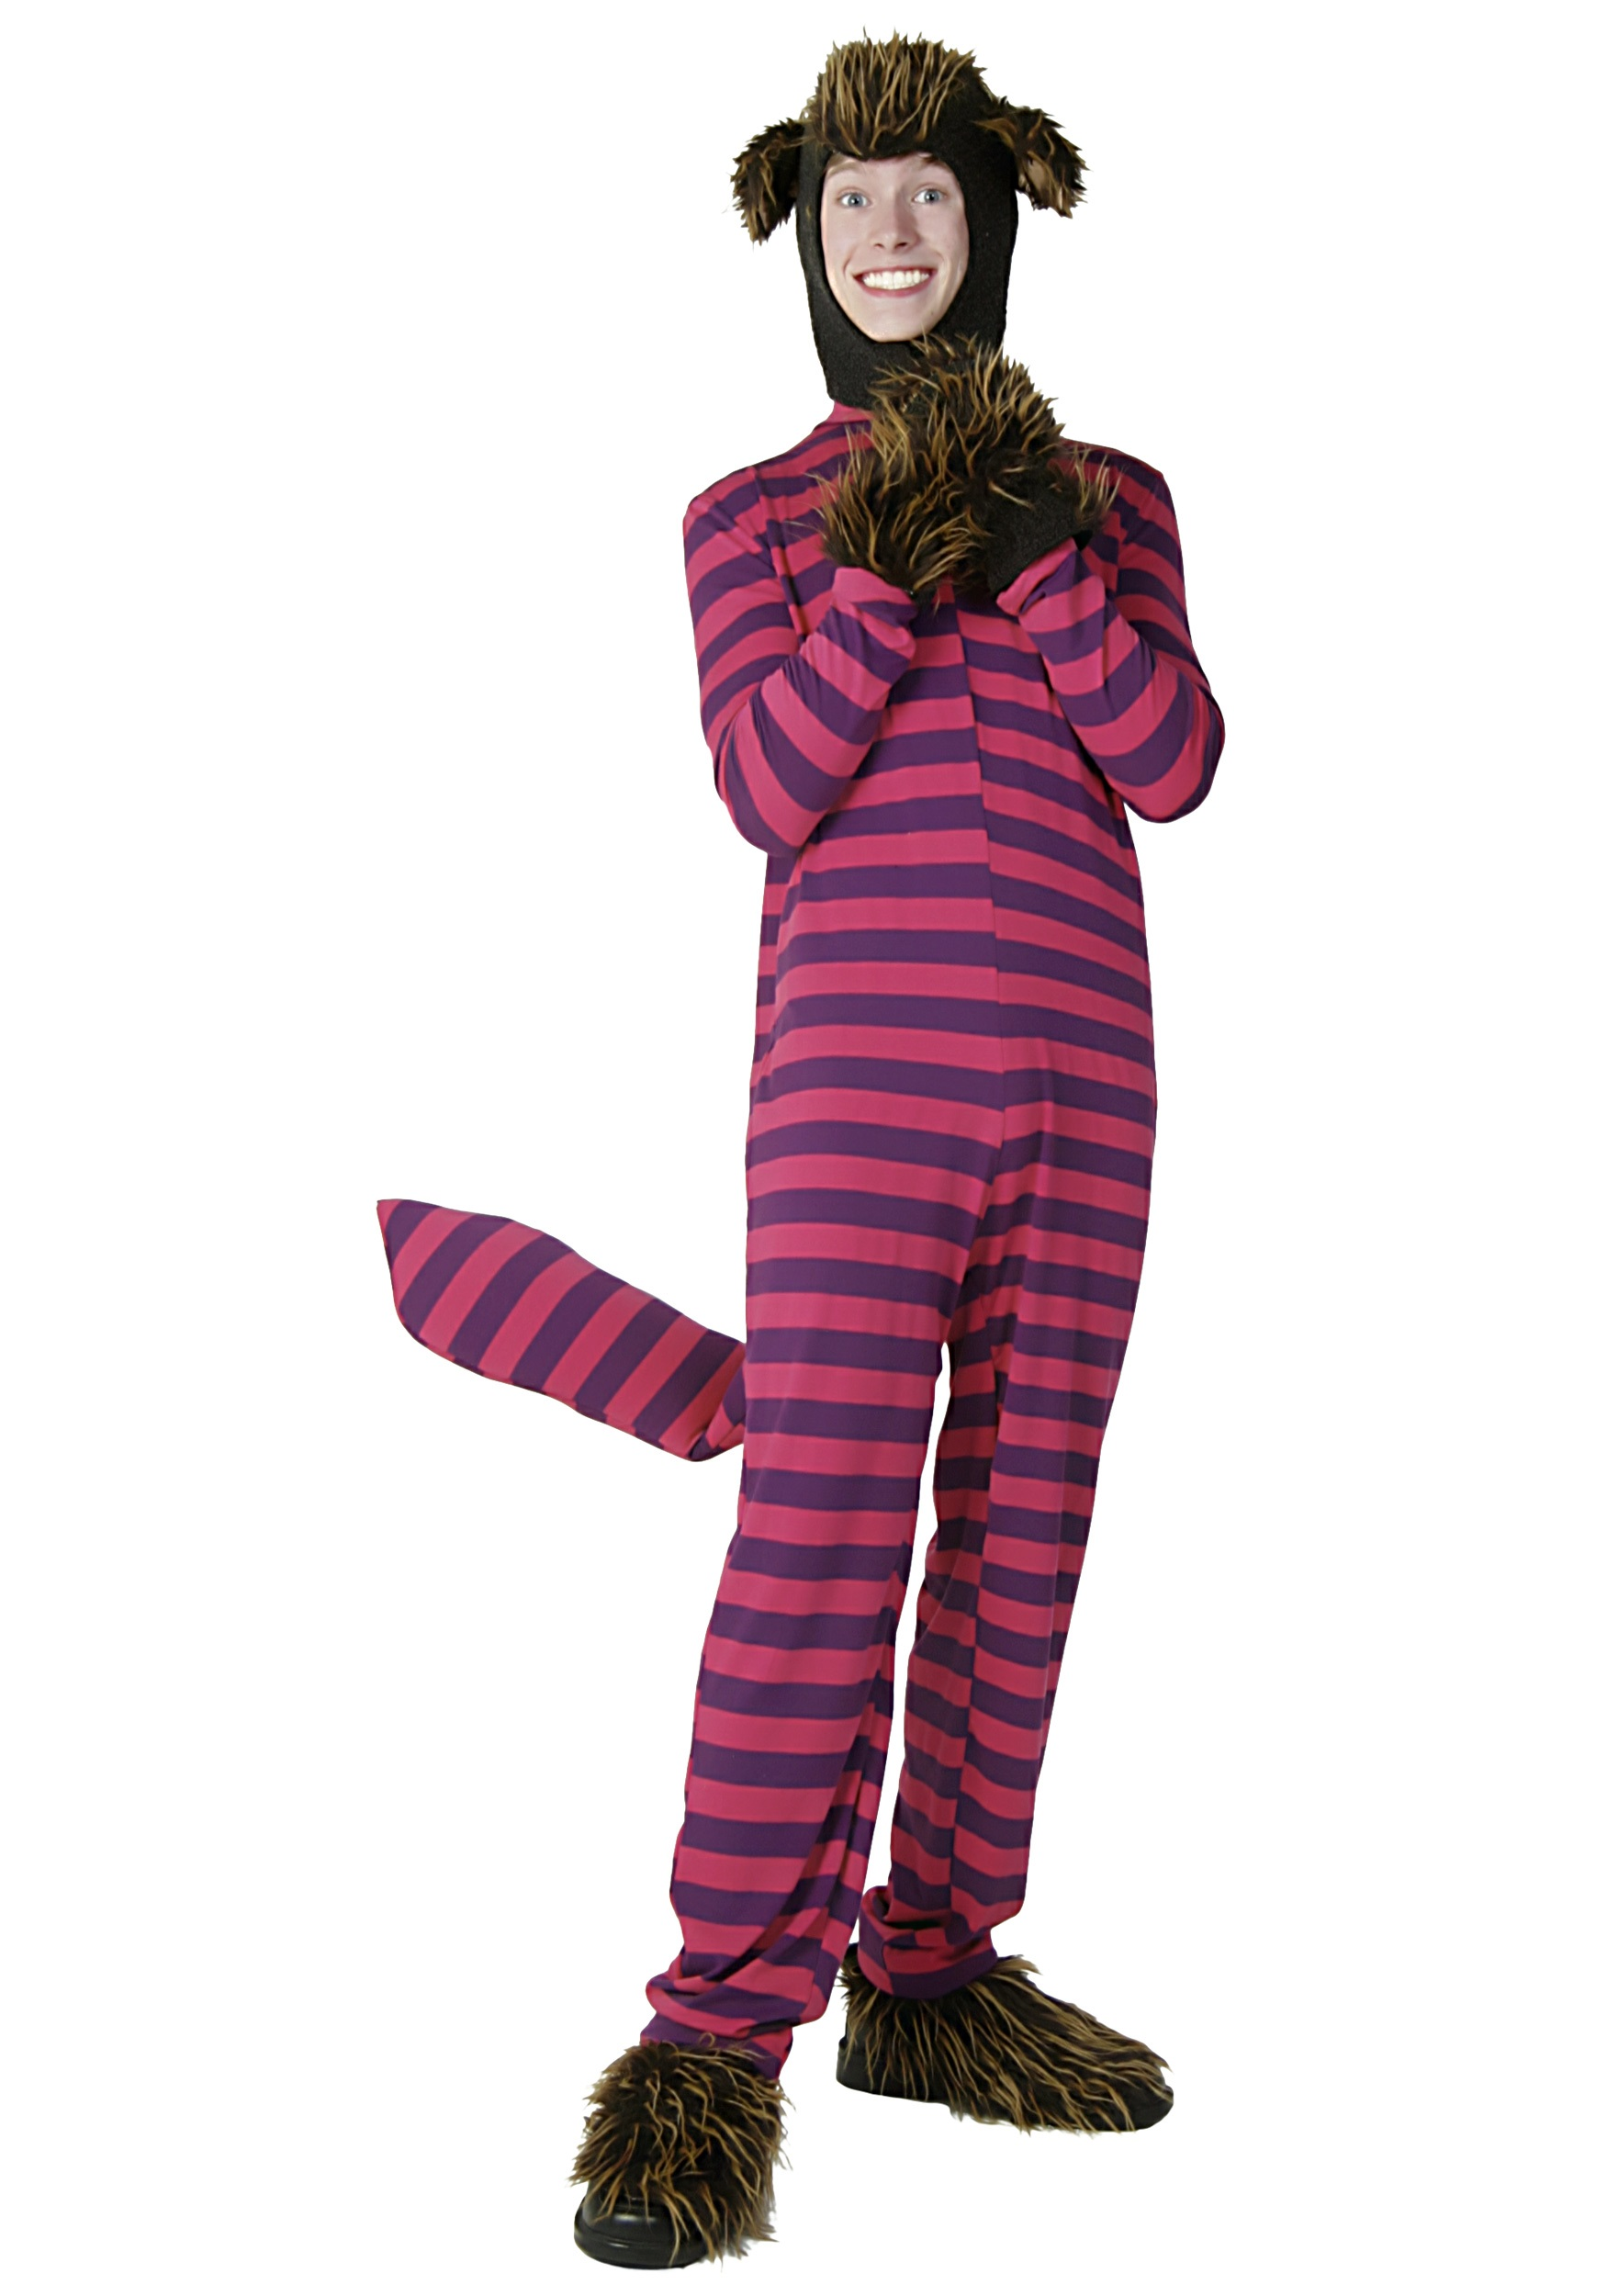 Cheshire Cat Teen Costume  sc 1 st  Halloween Costume & Cheshire Cat Teen Costume - Teen Alice in Wonderland Costumes